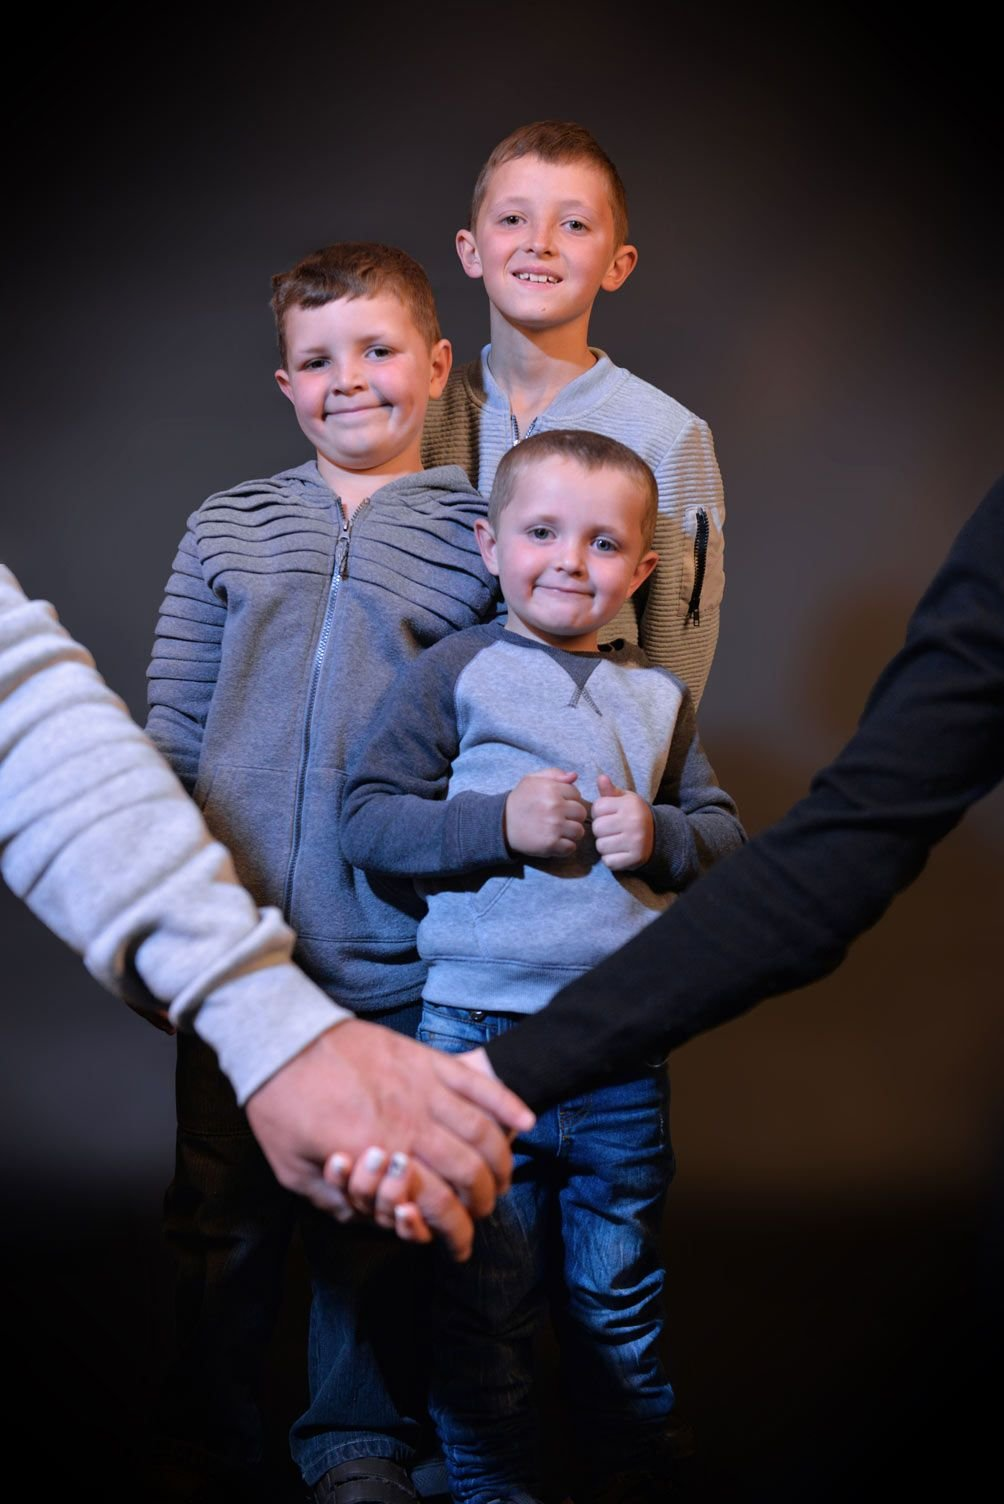 Family Photographers - Pretoria